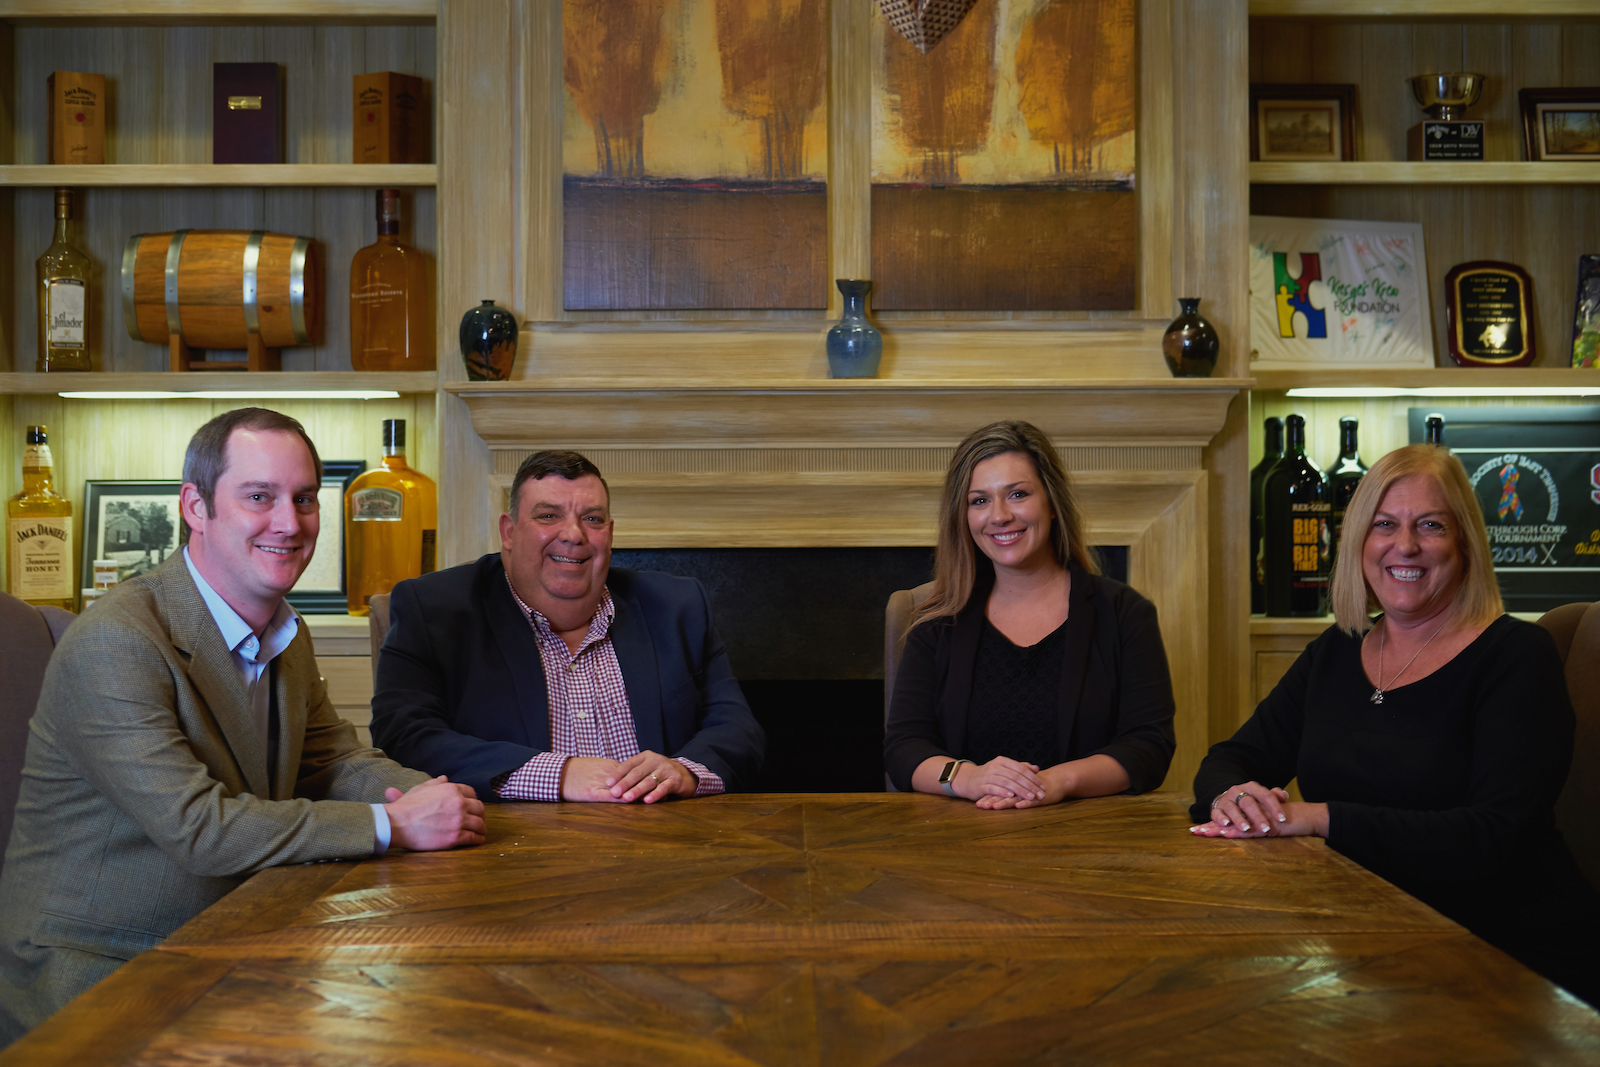 Corporate Head Shots in Knoxville Products too